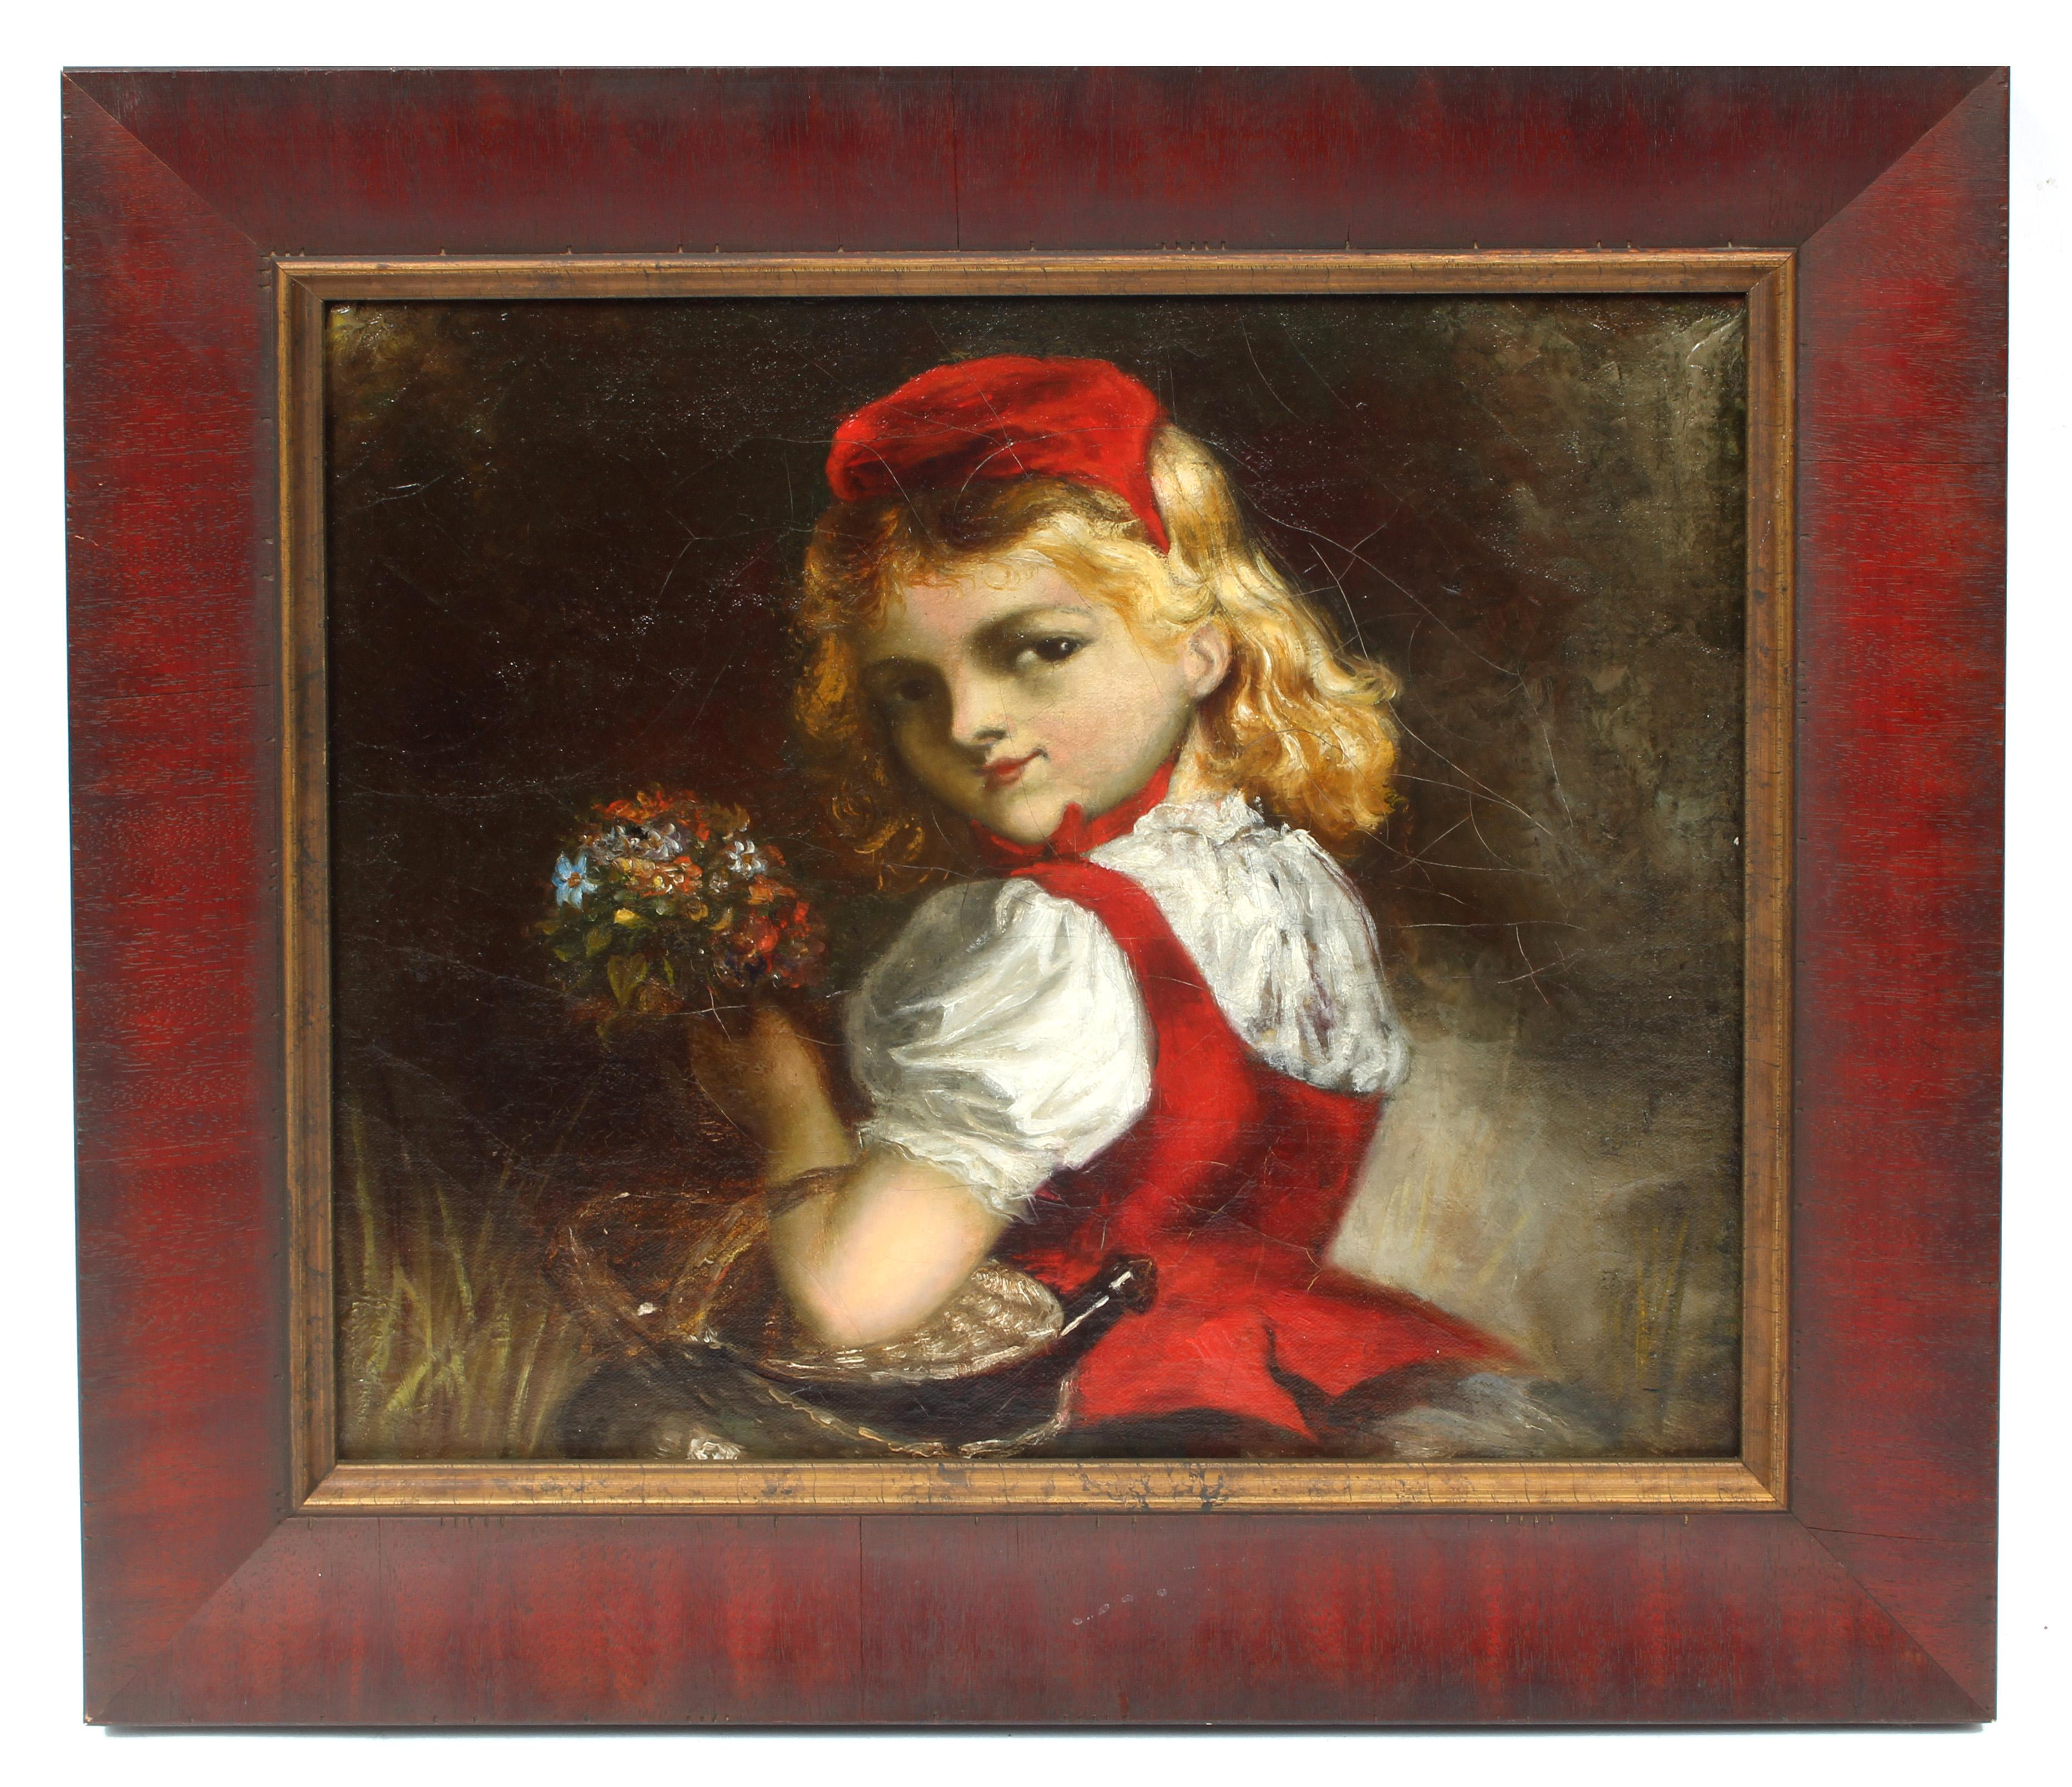 Antique American Impressionist Painting Red Riding Hood Framed 19th Century